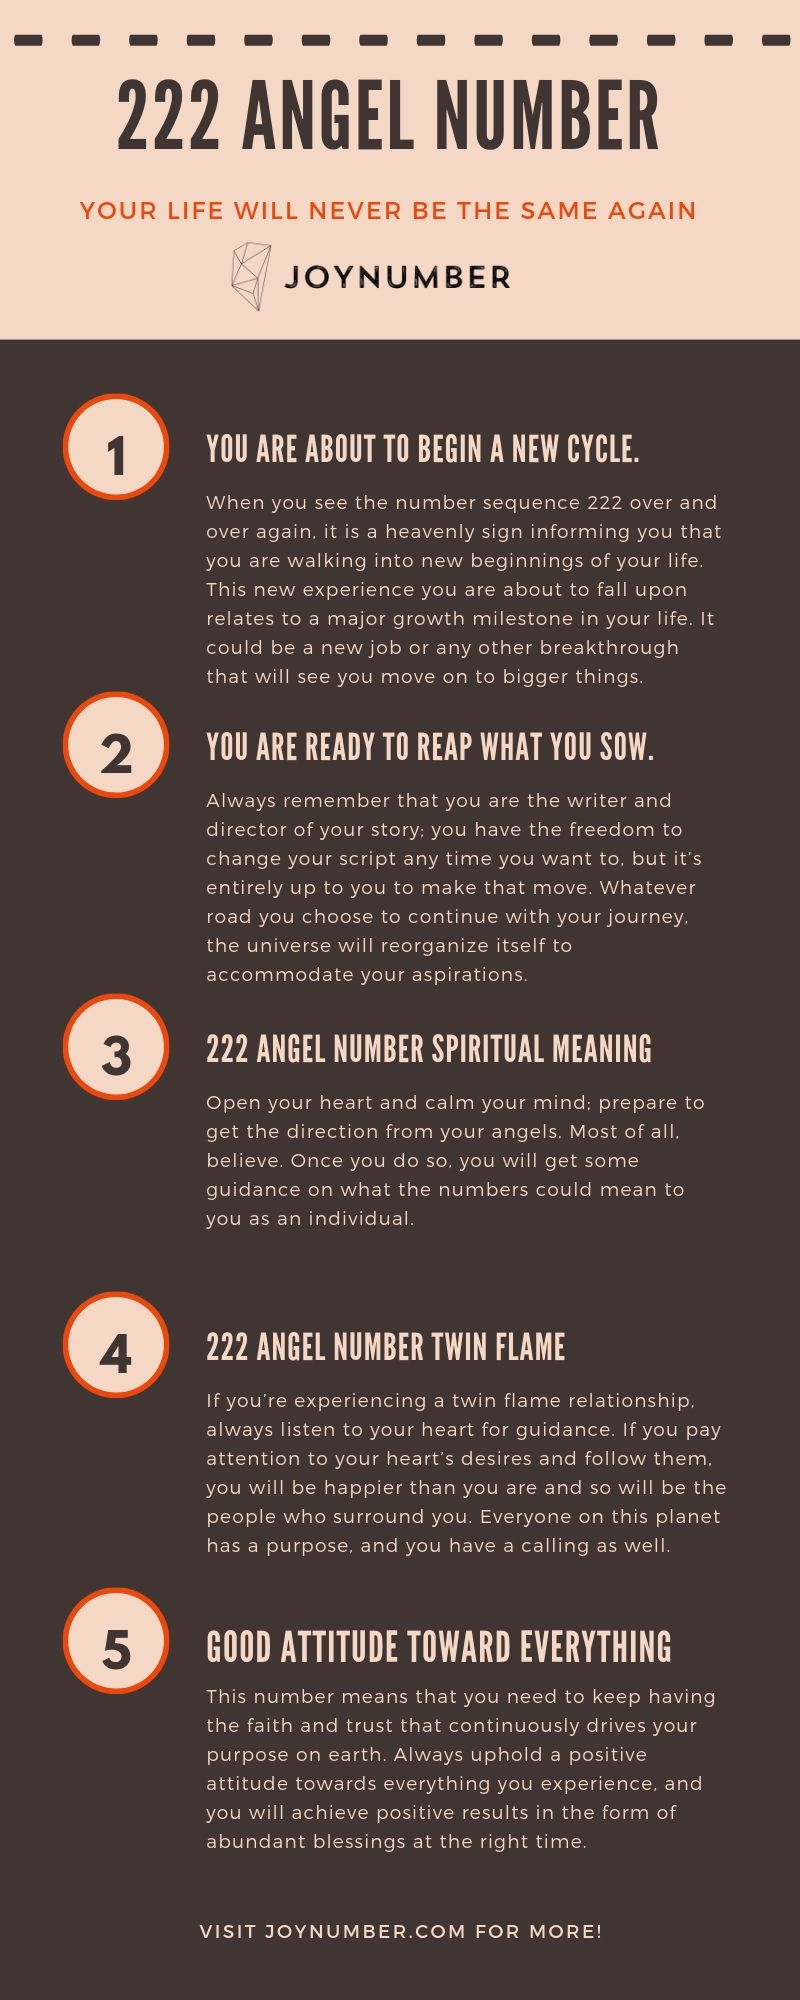 222 Angel Number Meaning Your Life Will Never Be The Same Again Joy Number Angel Number Meanings Number Meanings Angel Number 222